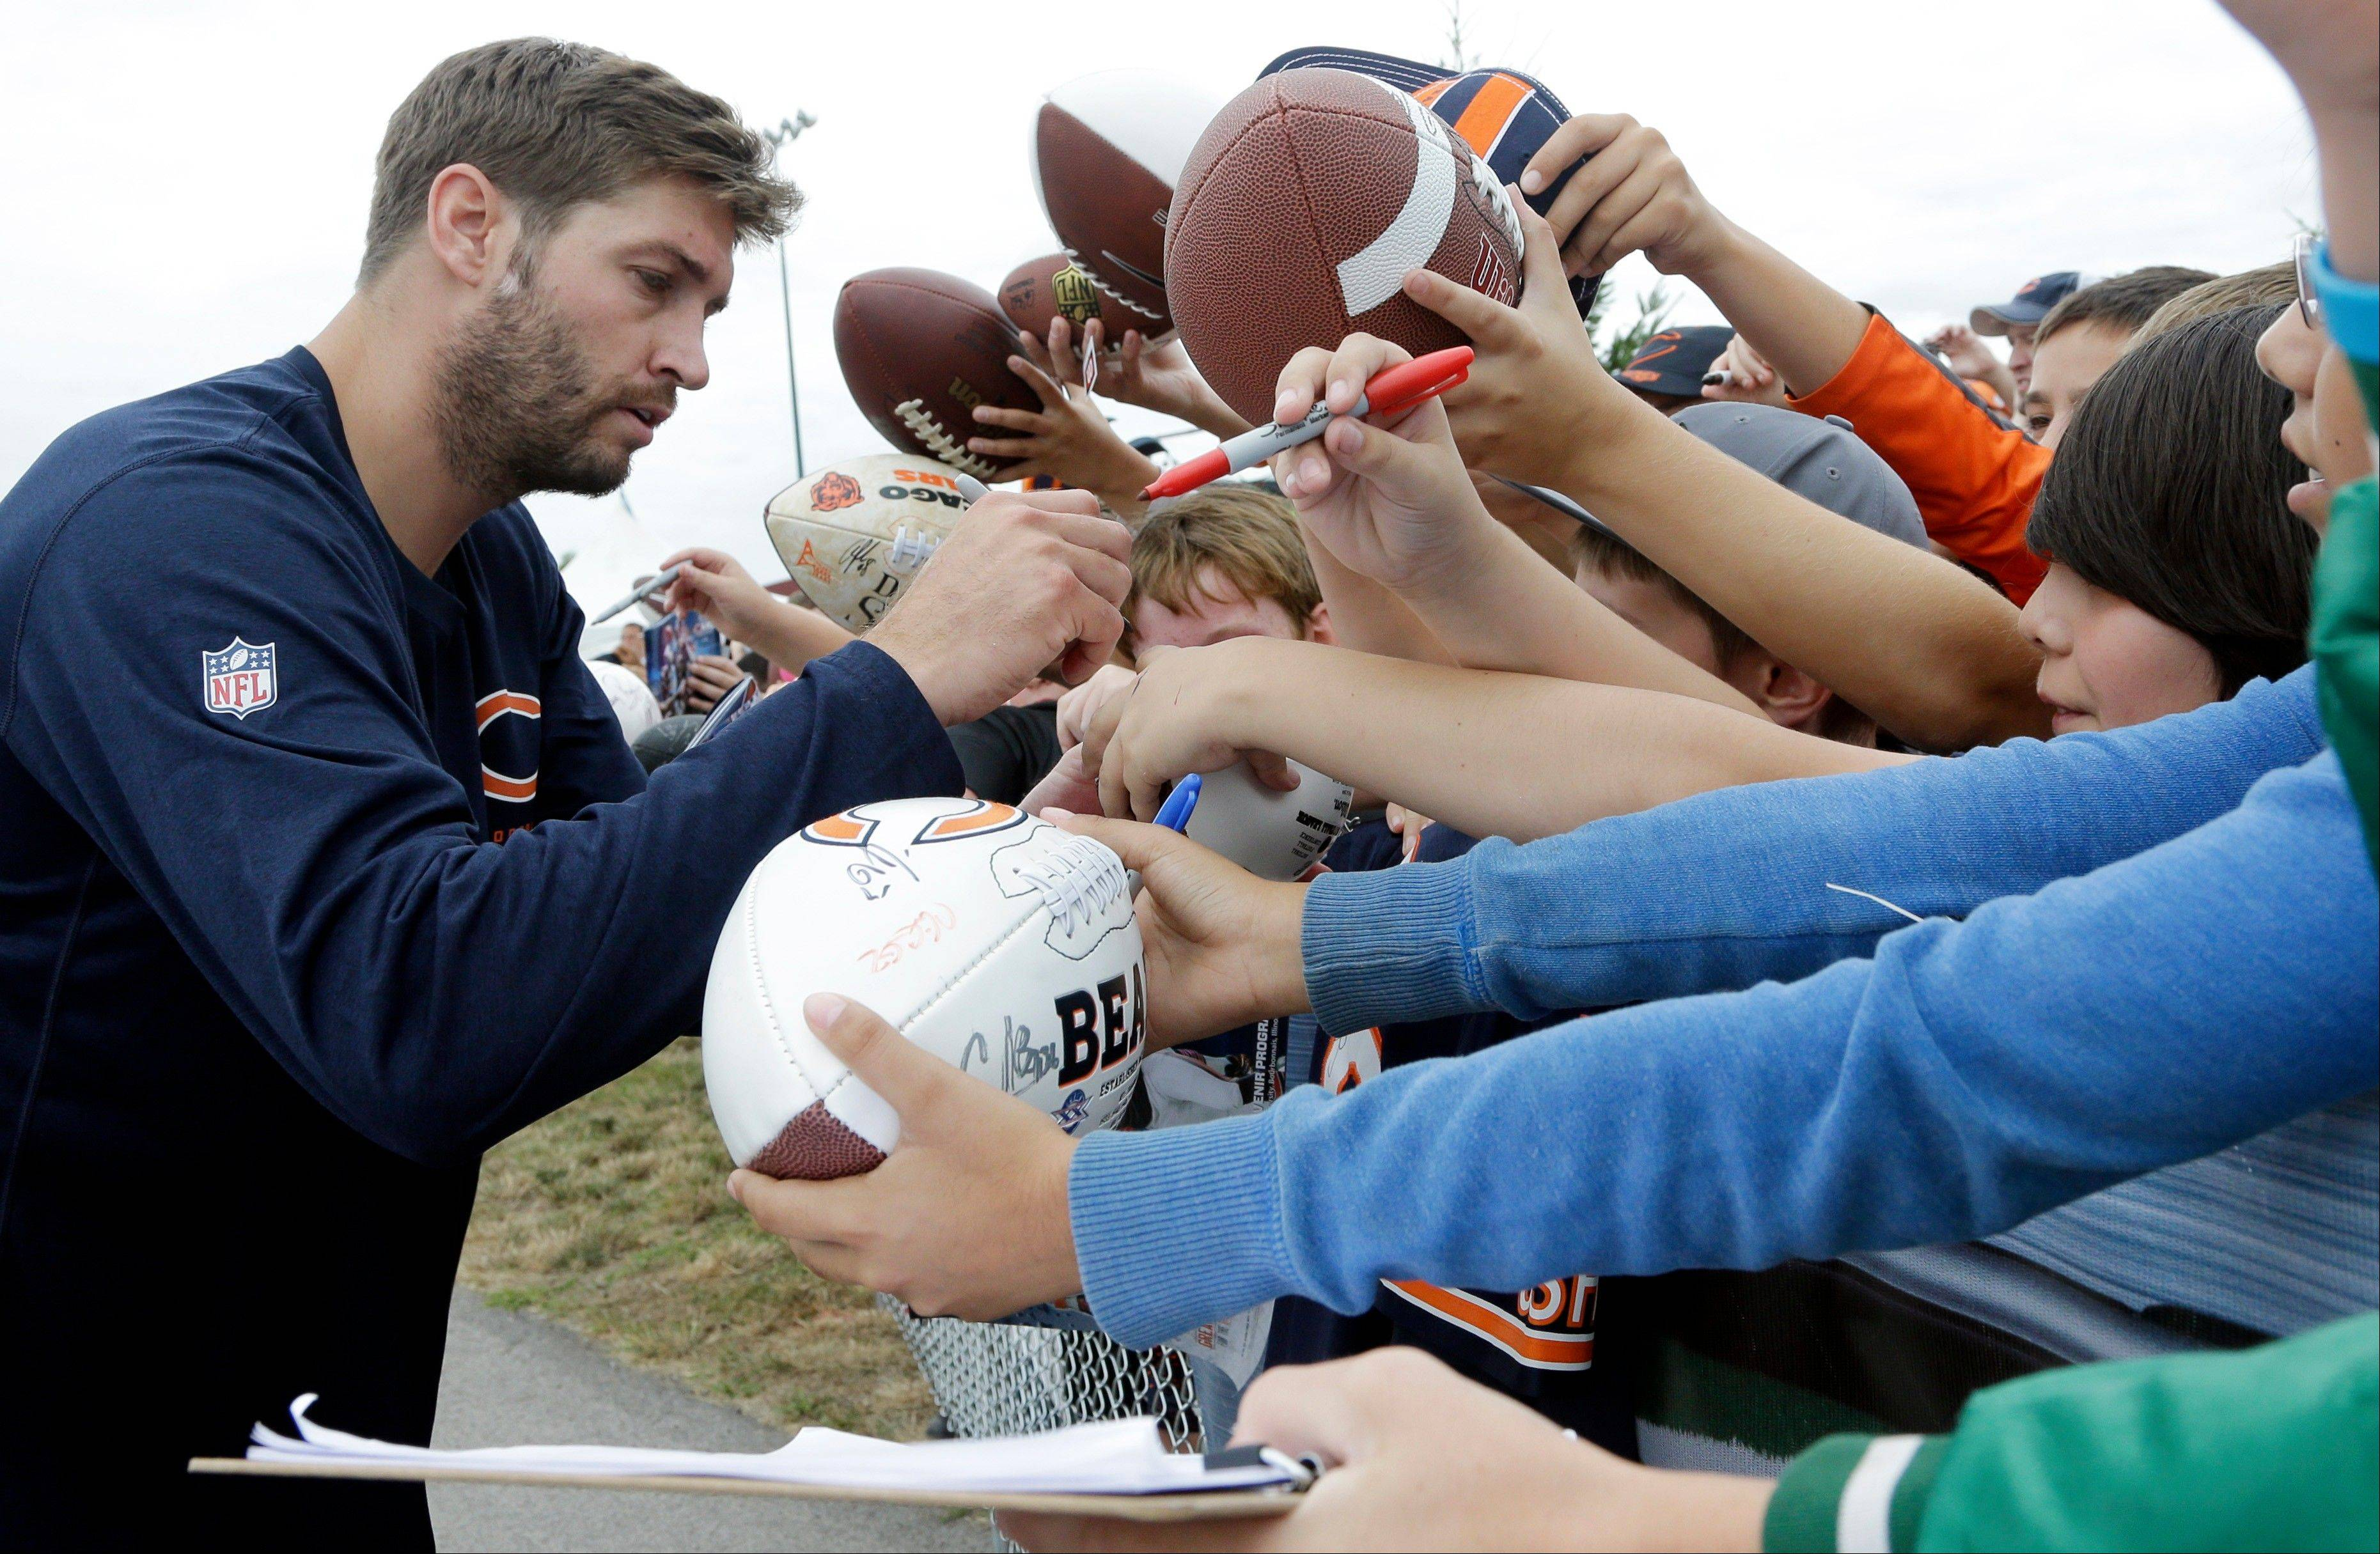 Chicago Bears quarterback Jay Cutler, left, signs autographs for fans.